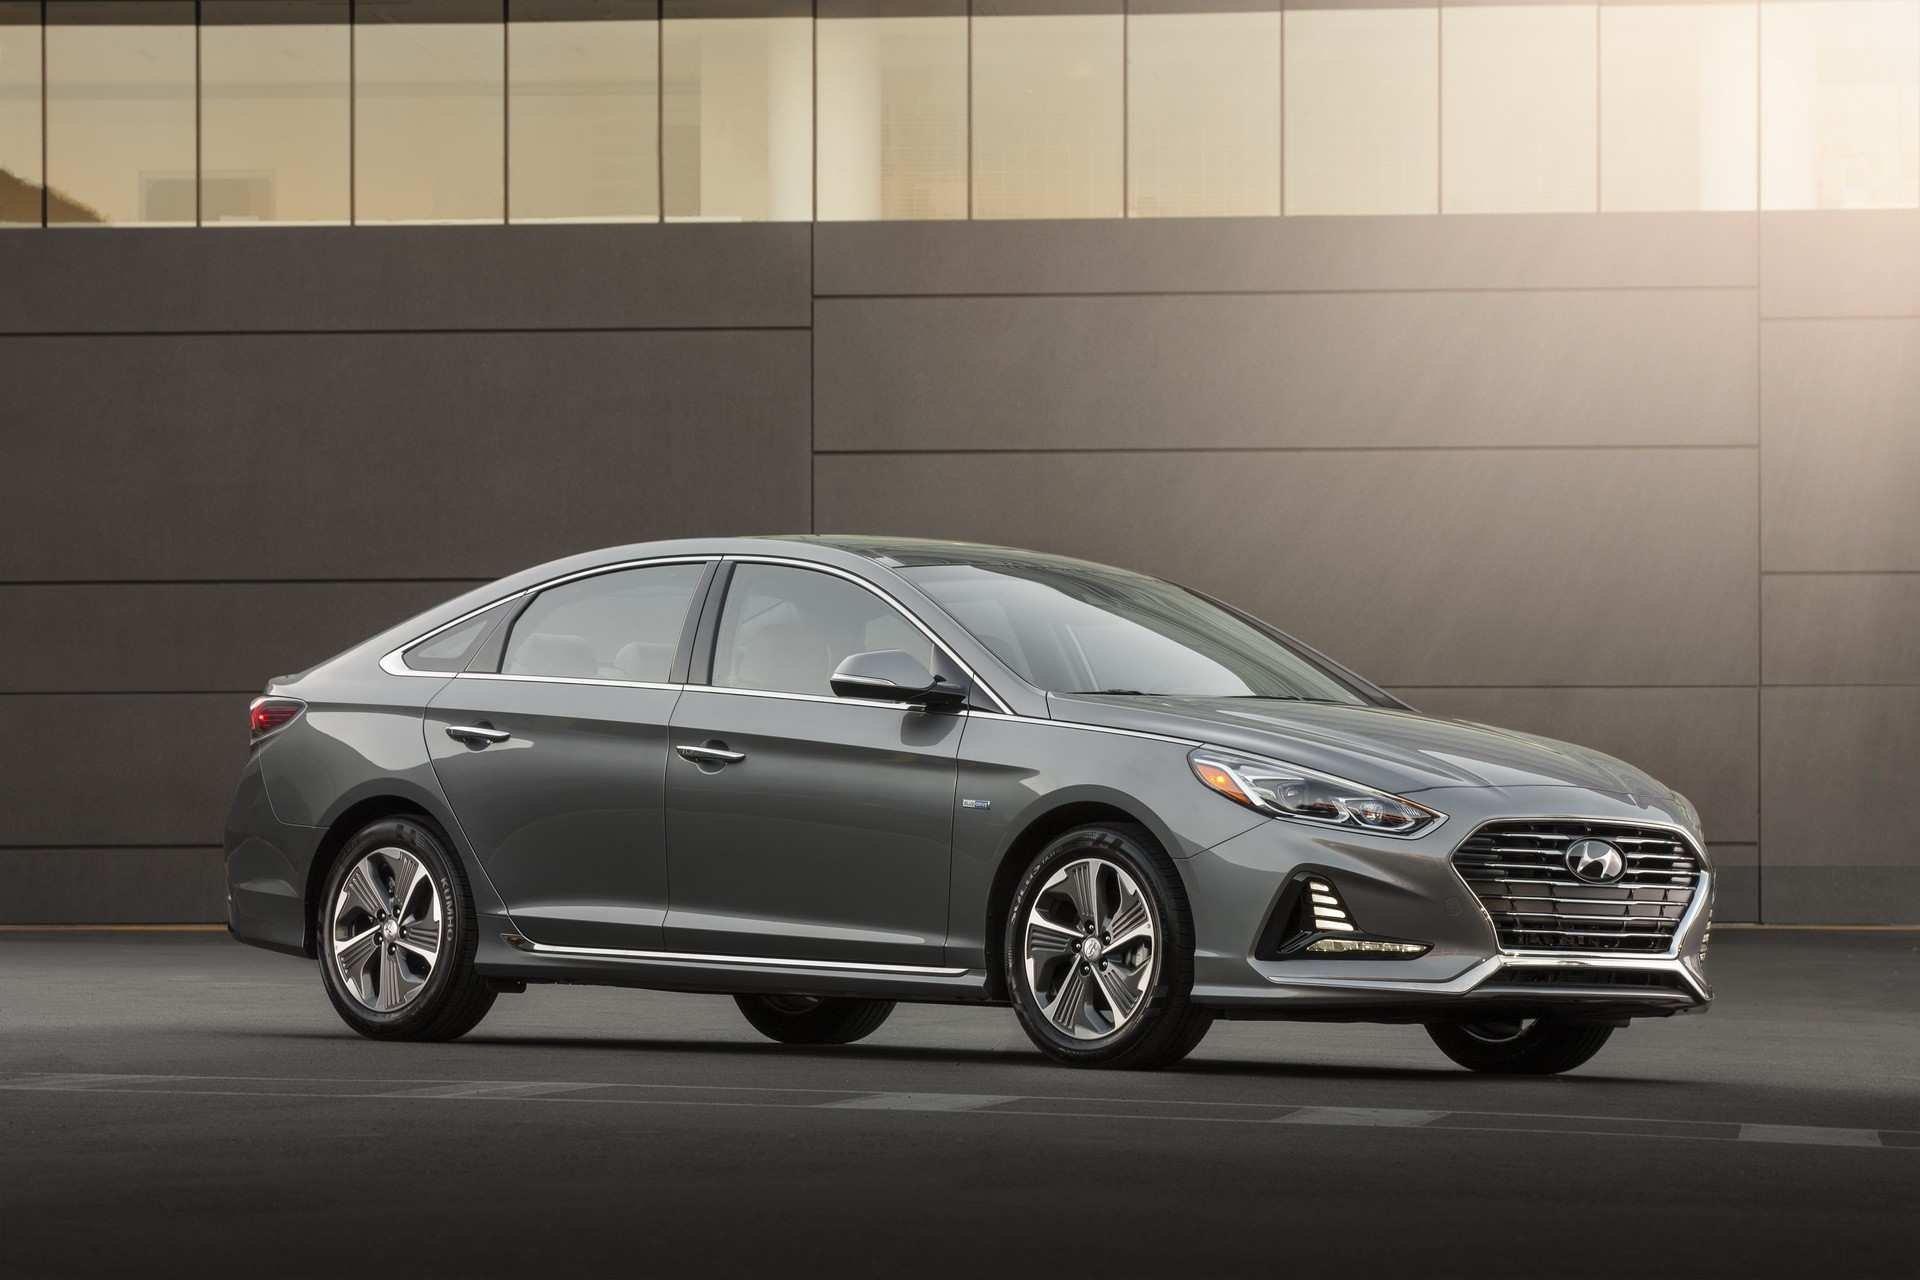 72 Best Review 2020 Hyundai Sonata Hybrid New Concept with 2020 Hyundai Sonata Hybrid